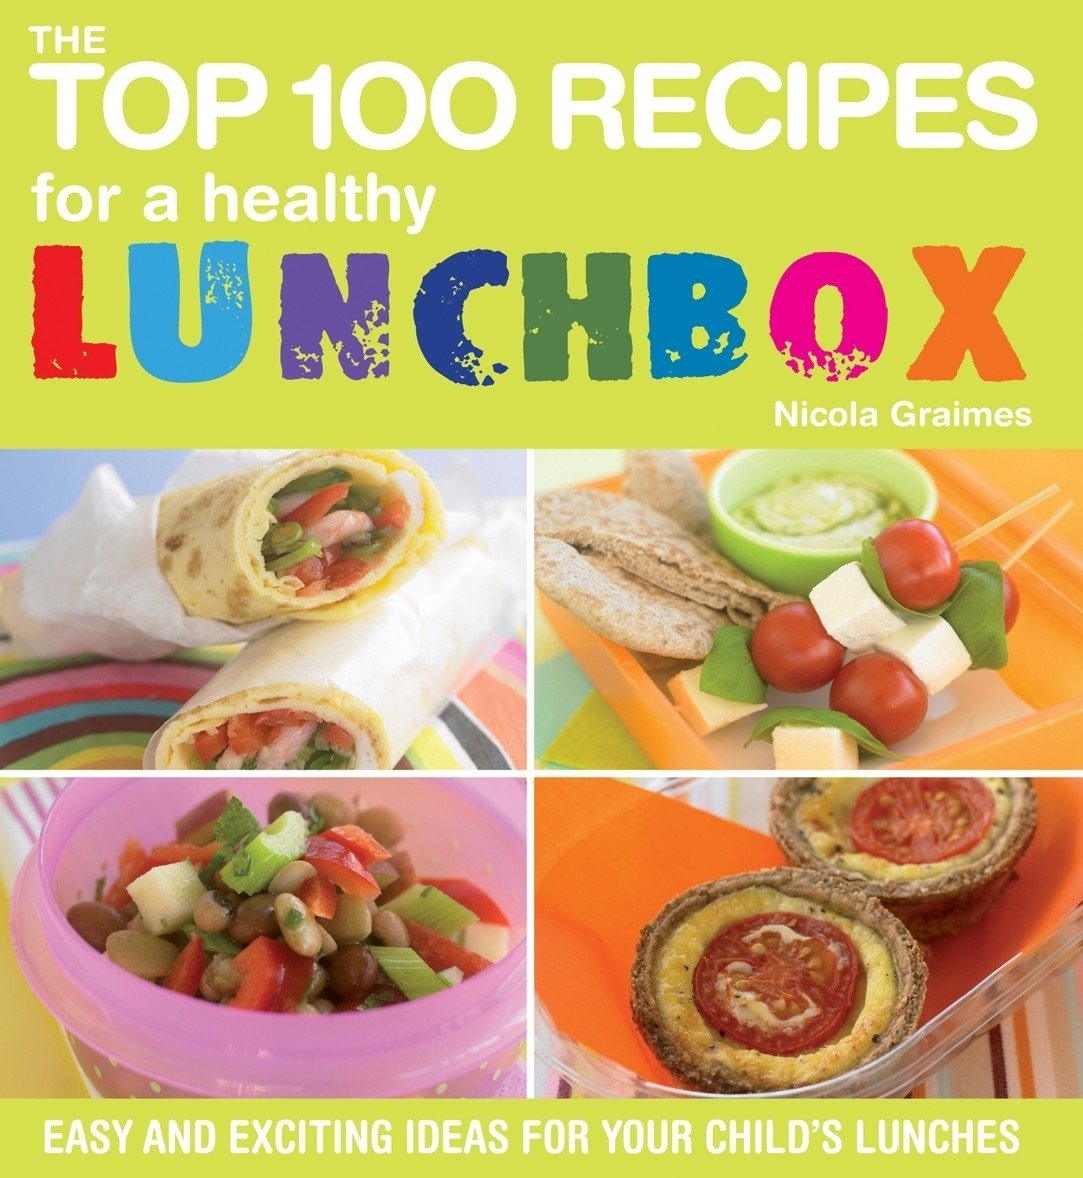 10 Amazing Healthy Lunch Ideas For Kids the top 100 recipes for a healthy lunchbox lunch ideas nourish 1 2020